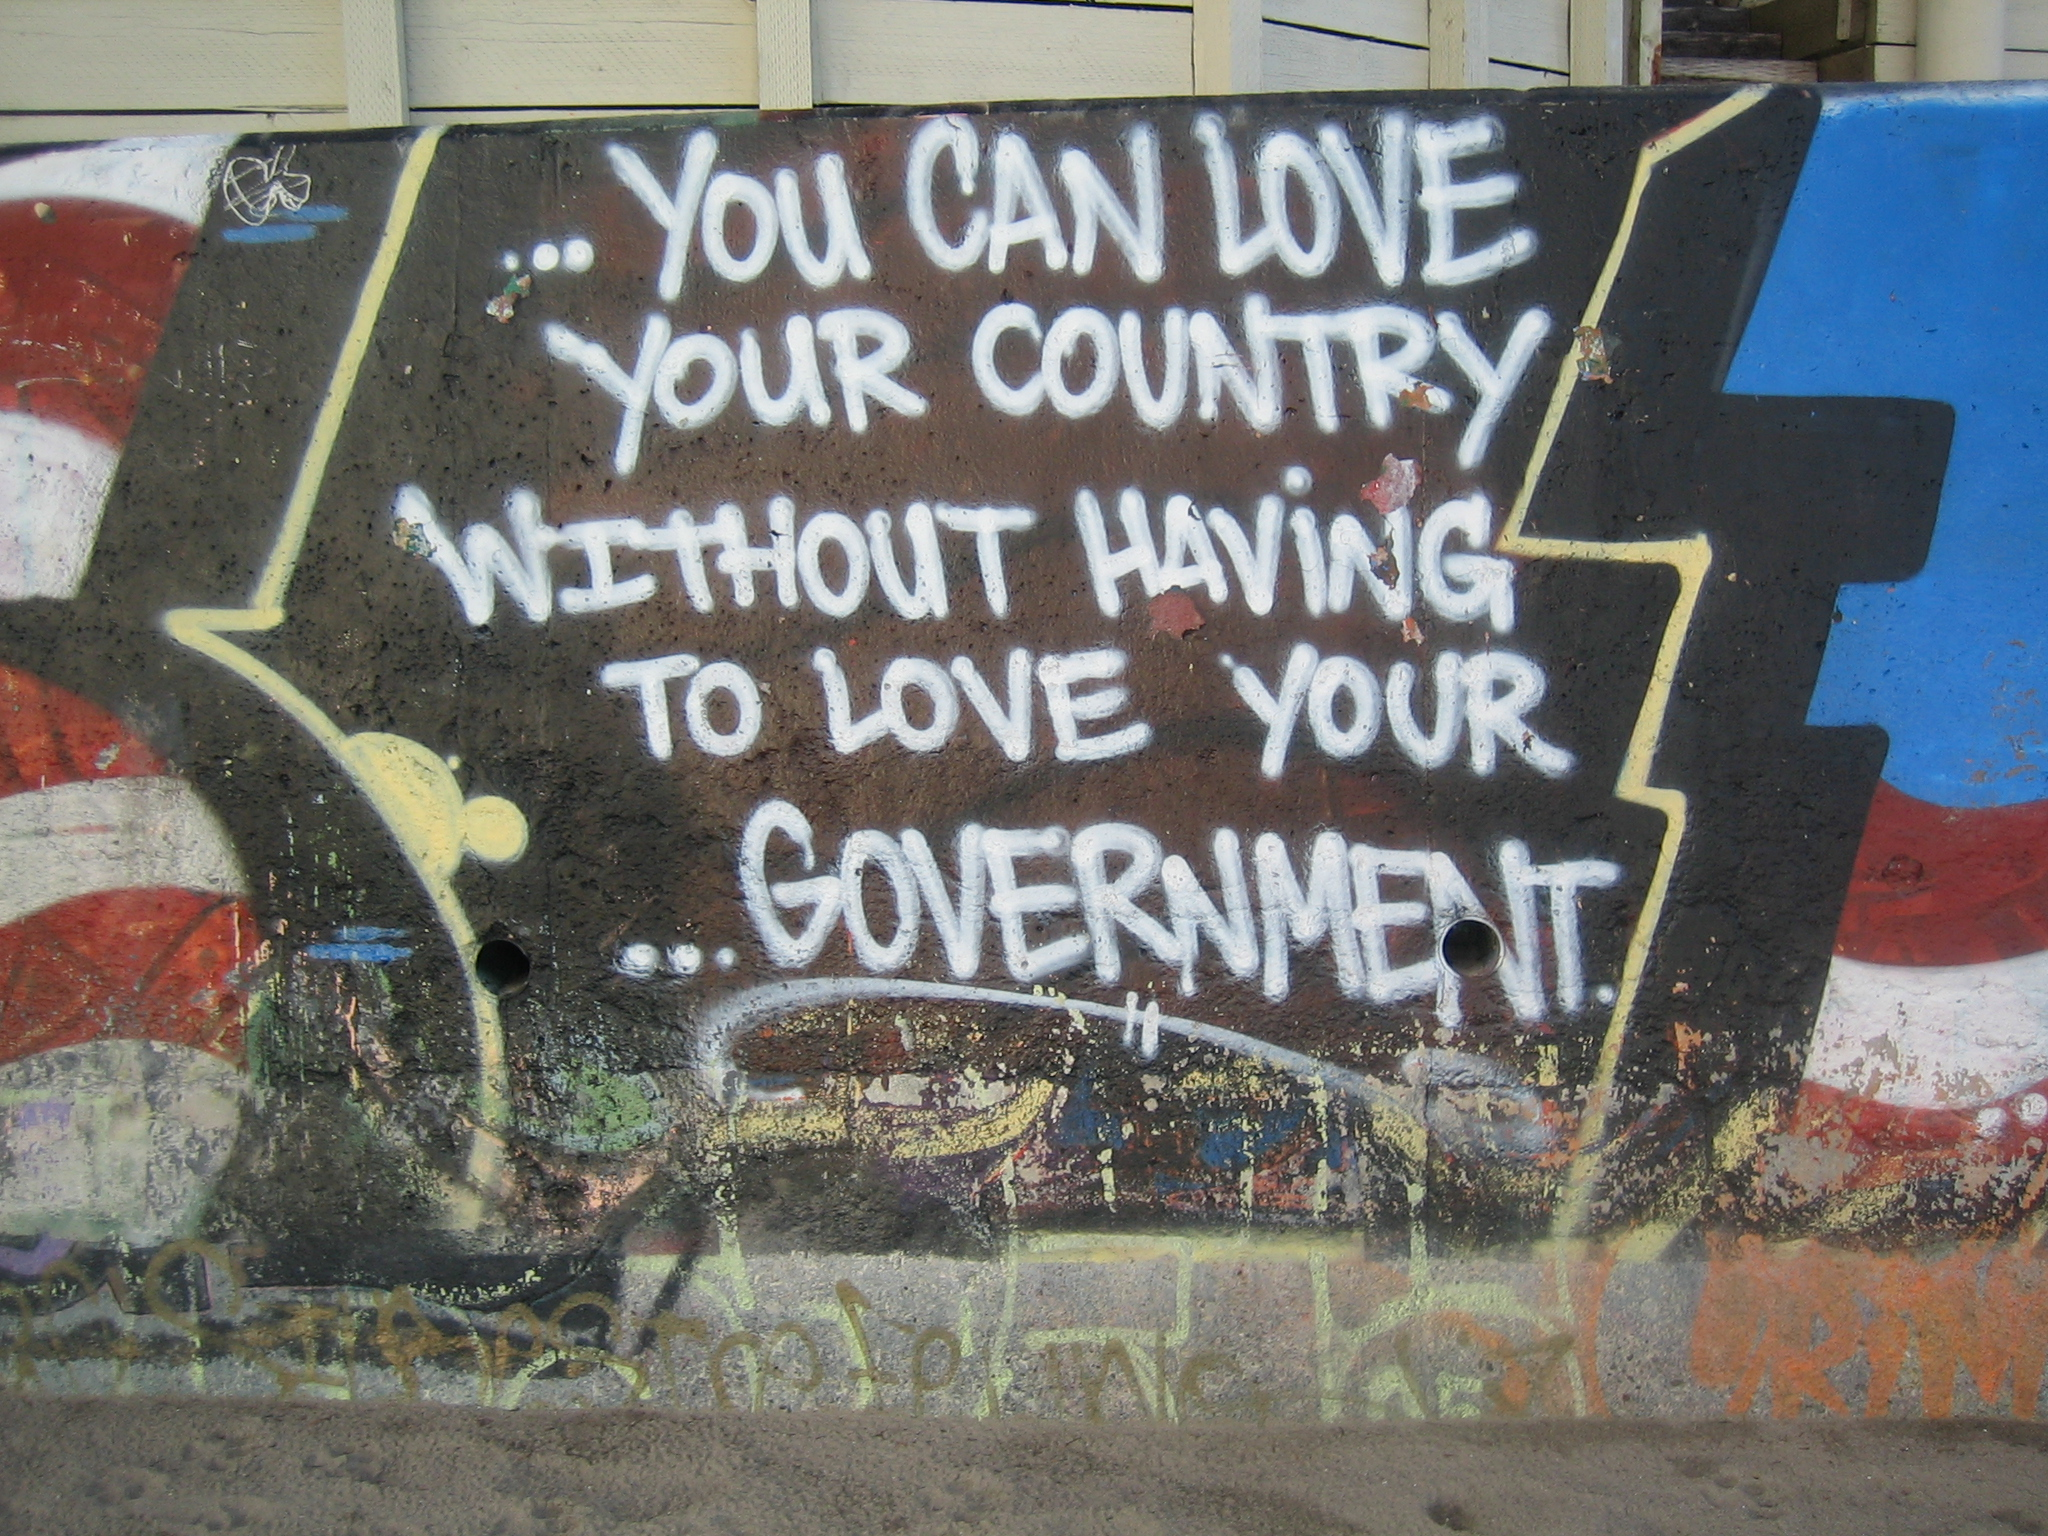 Love_your_country,_not_government.jpg